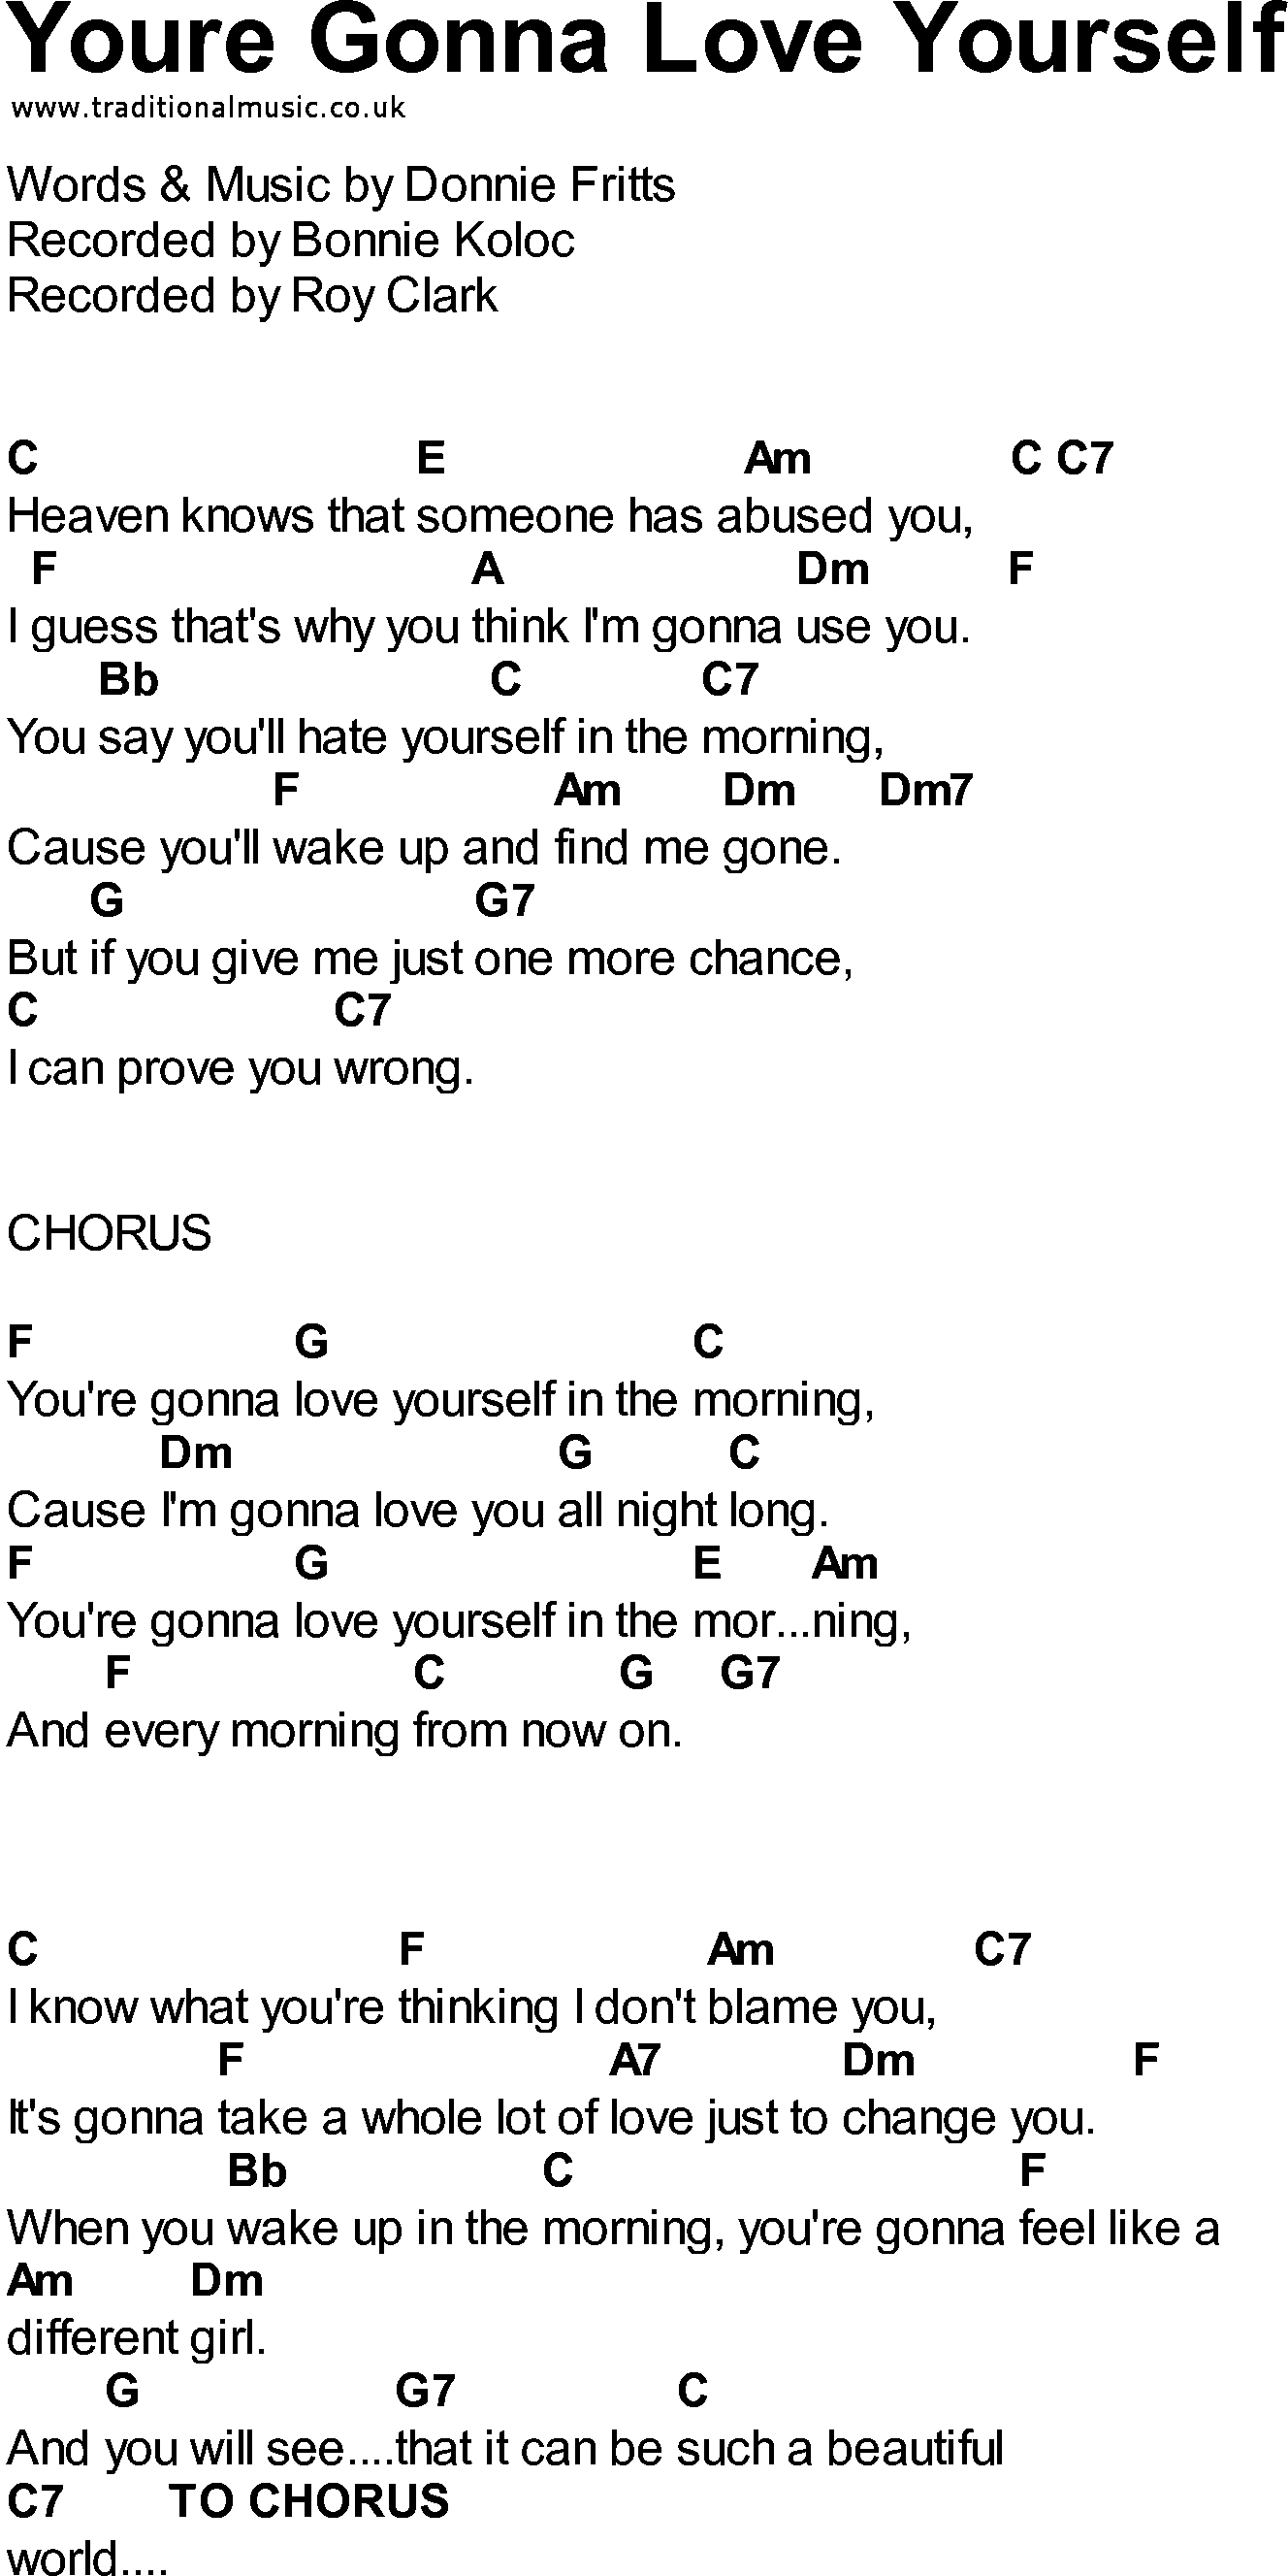 Bluegrass songs with chords - Youre Gonna Love Yourself